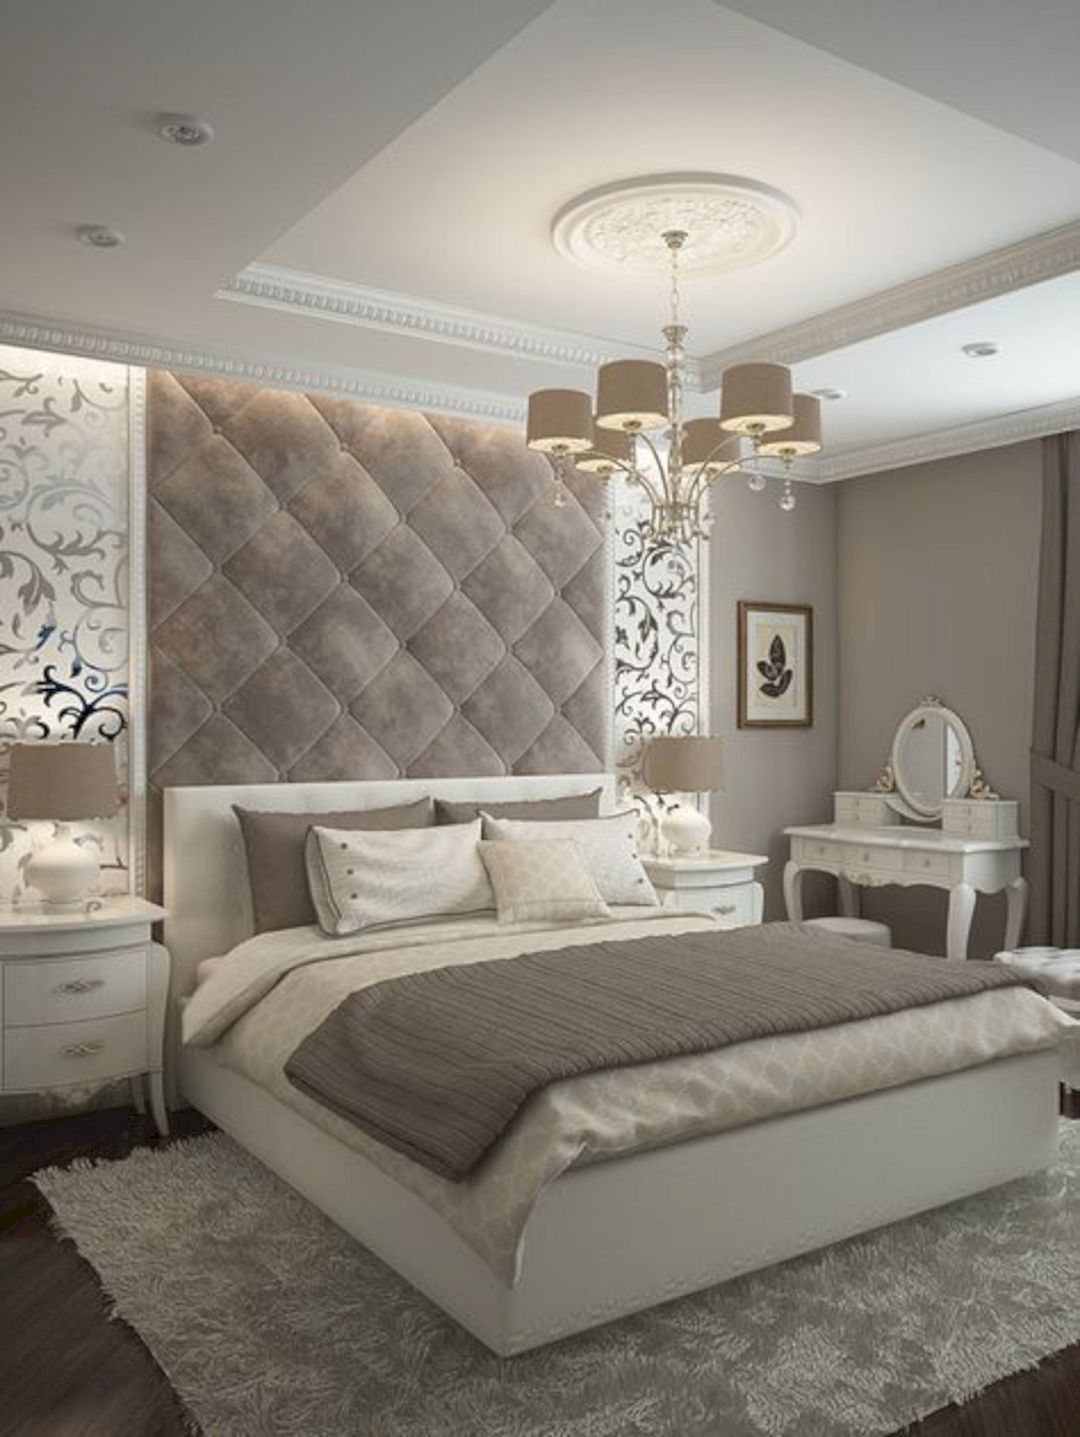 Elegant Bedroom Designs 6  Decorating Ideas  Pinterest  Elegant Unique Elegant Bedrooms Designs Design Decoration